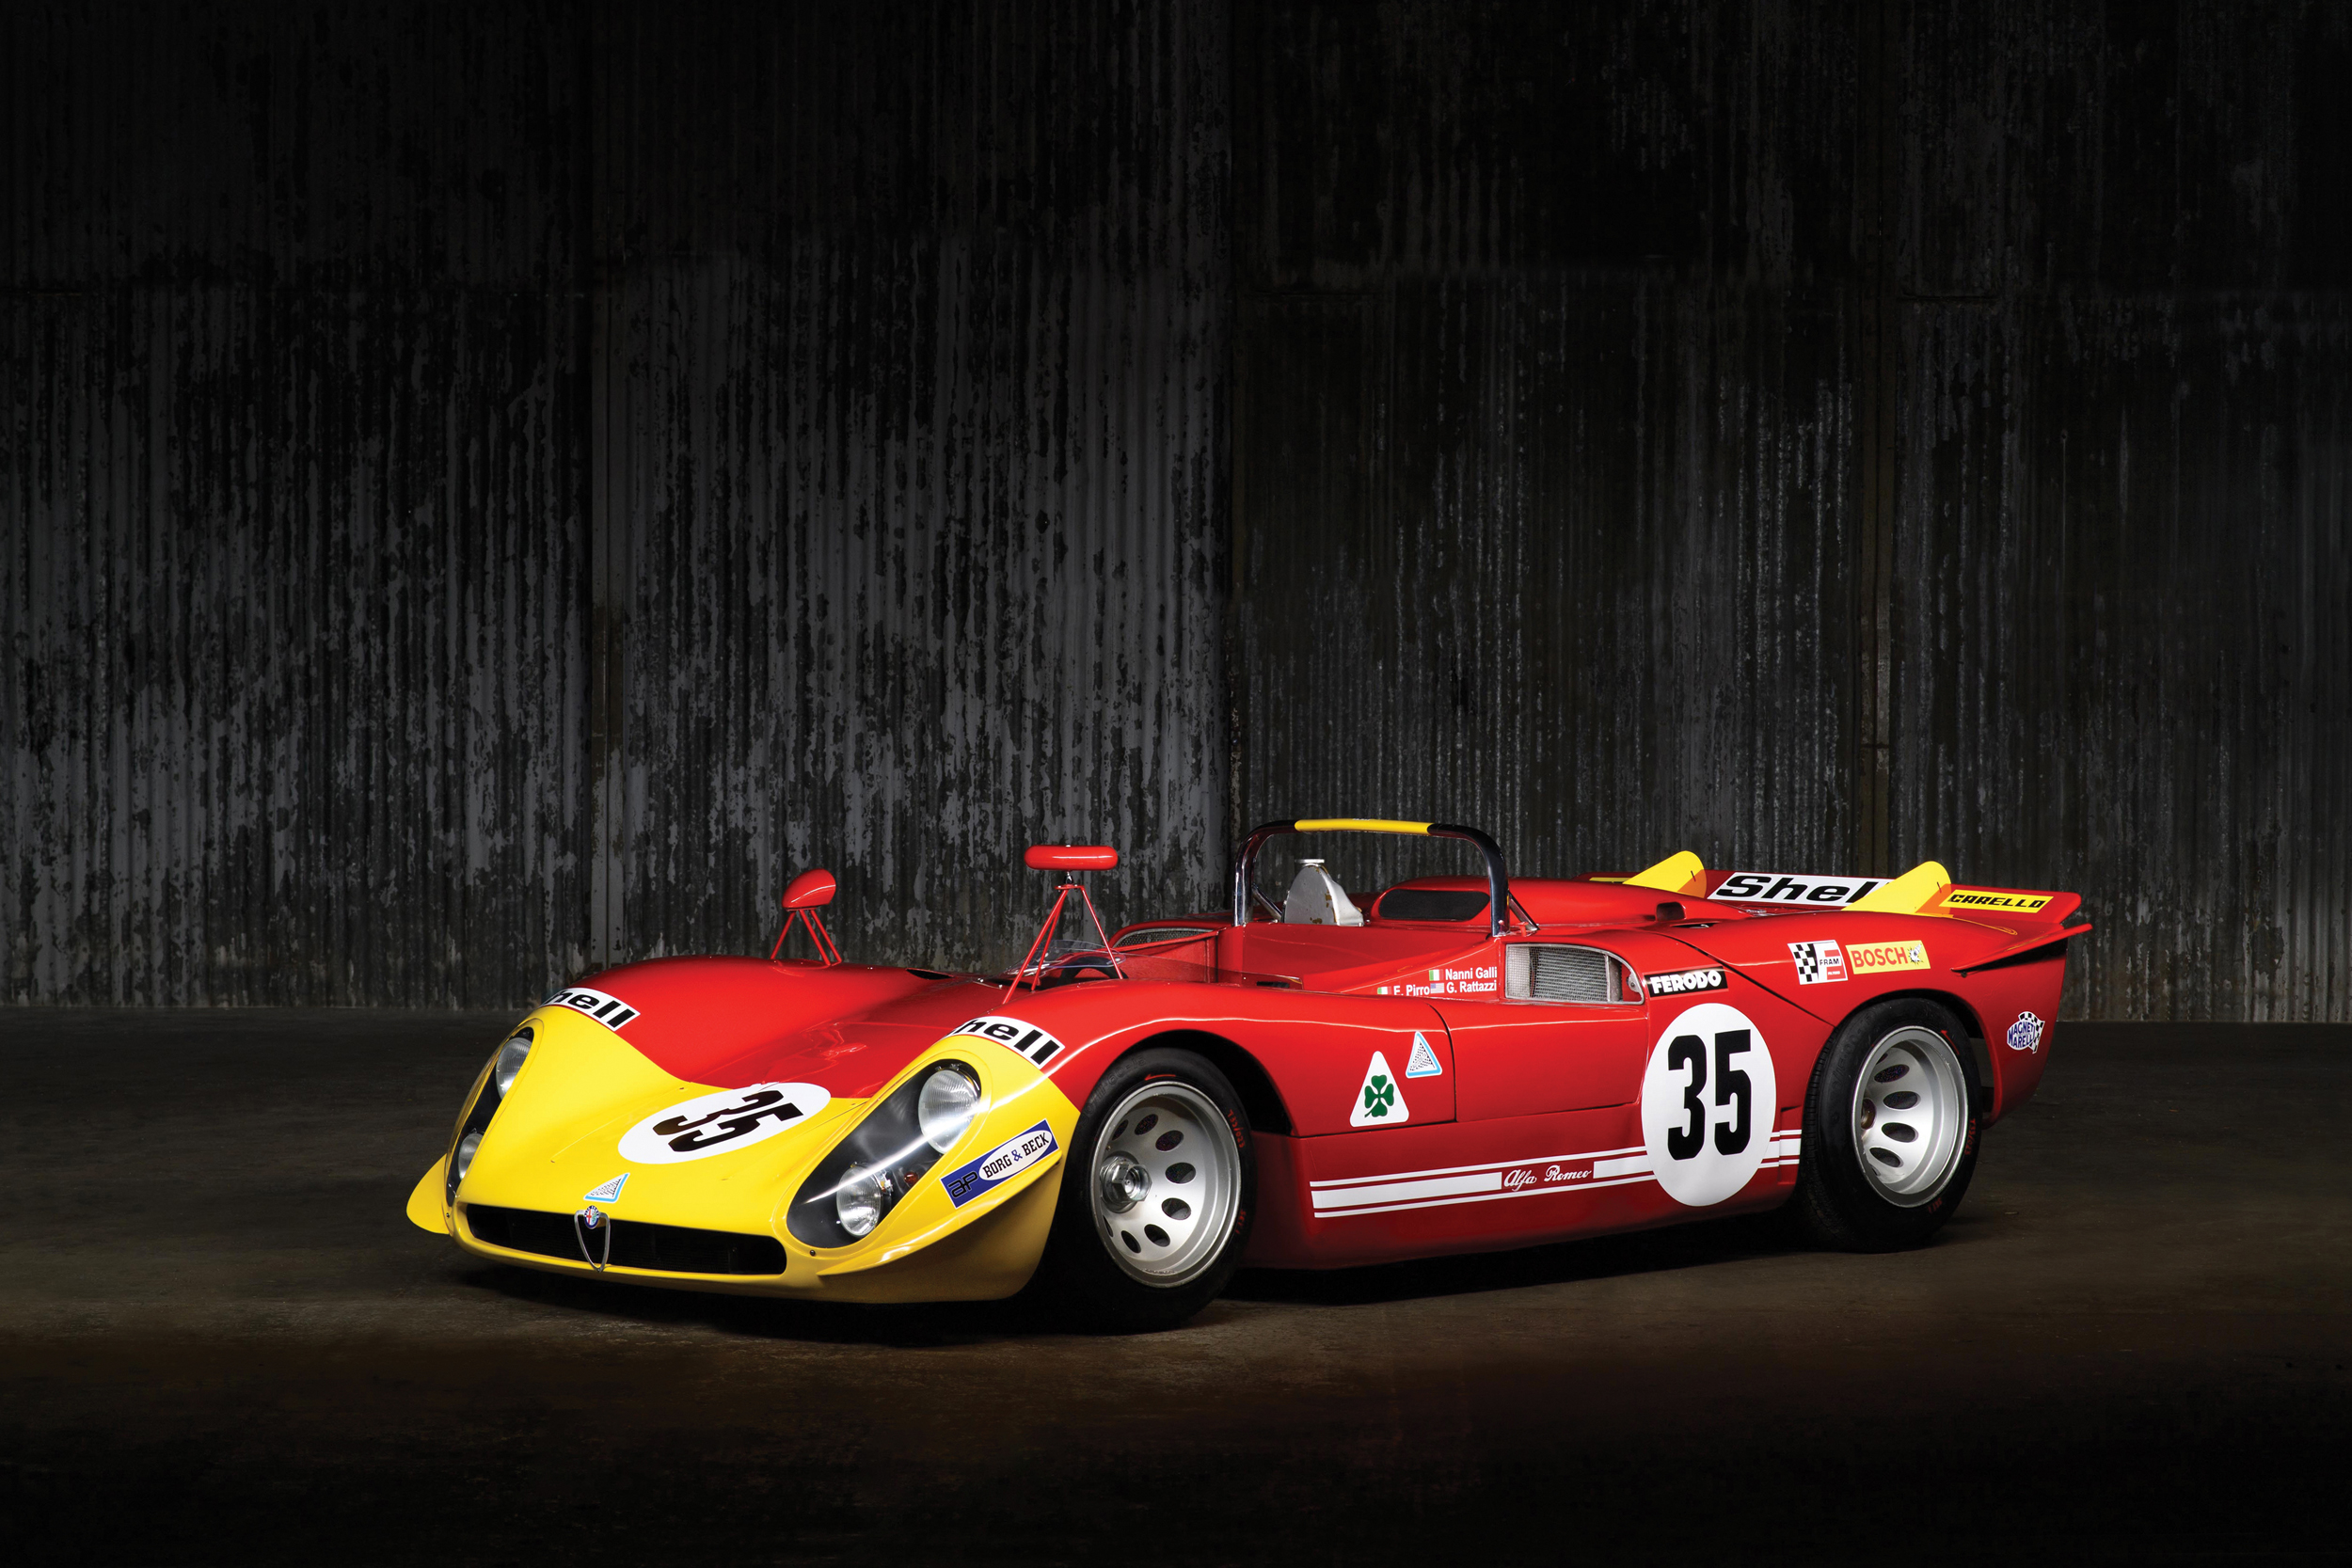 1969 Alfa Romeo Tipo 33/3 (Credit – Tim Scott © 2020 Courtesy of RM Sotheby's)